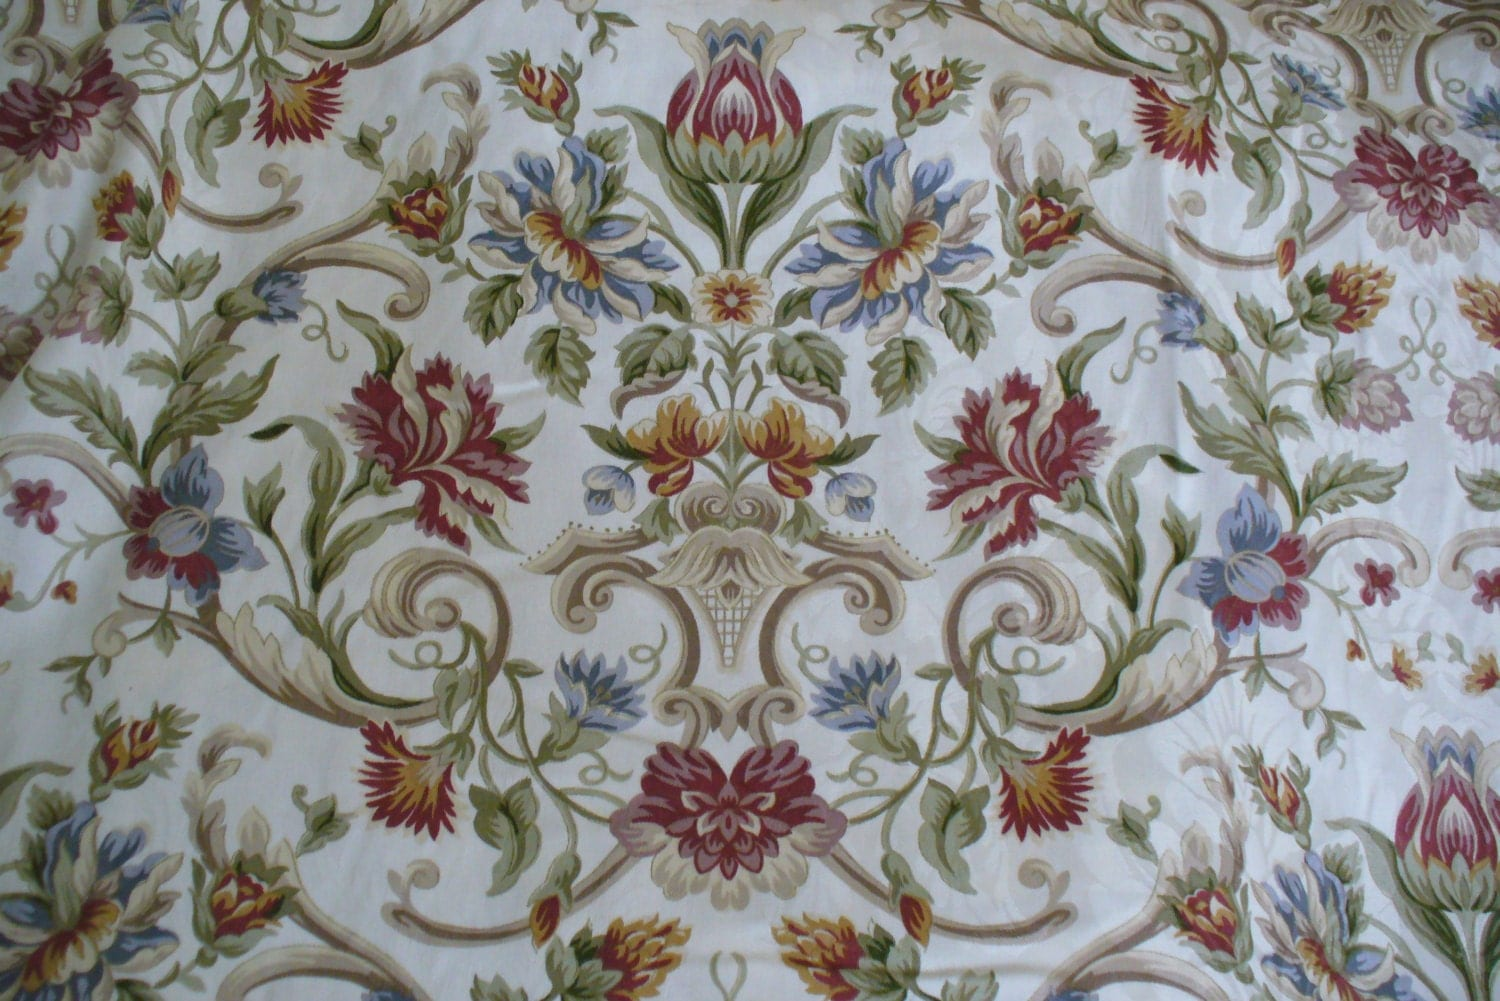 Fabric By The Yard, Cotton, Beautiful Floral Print, Home